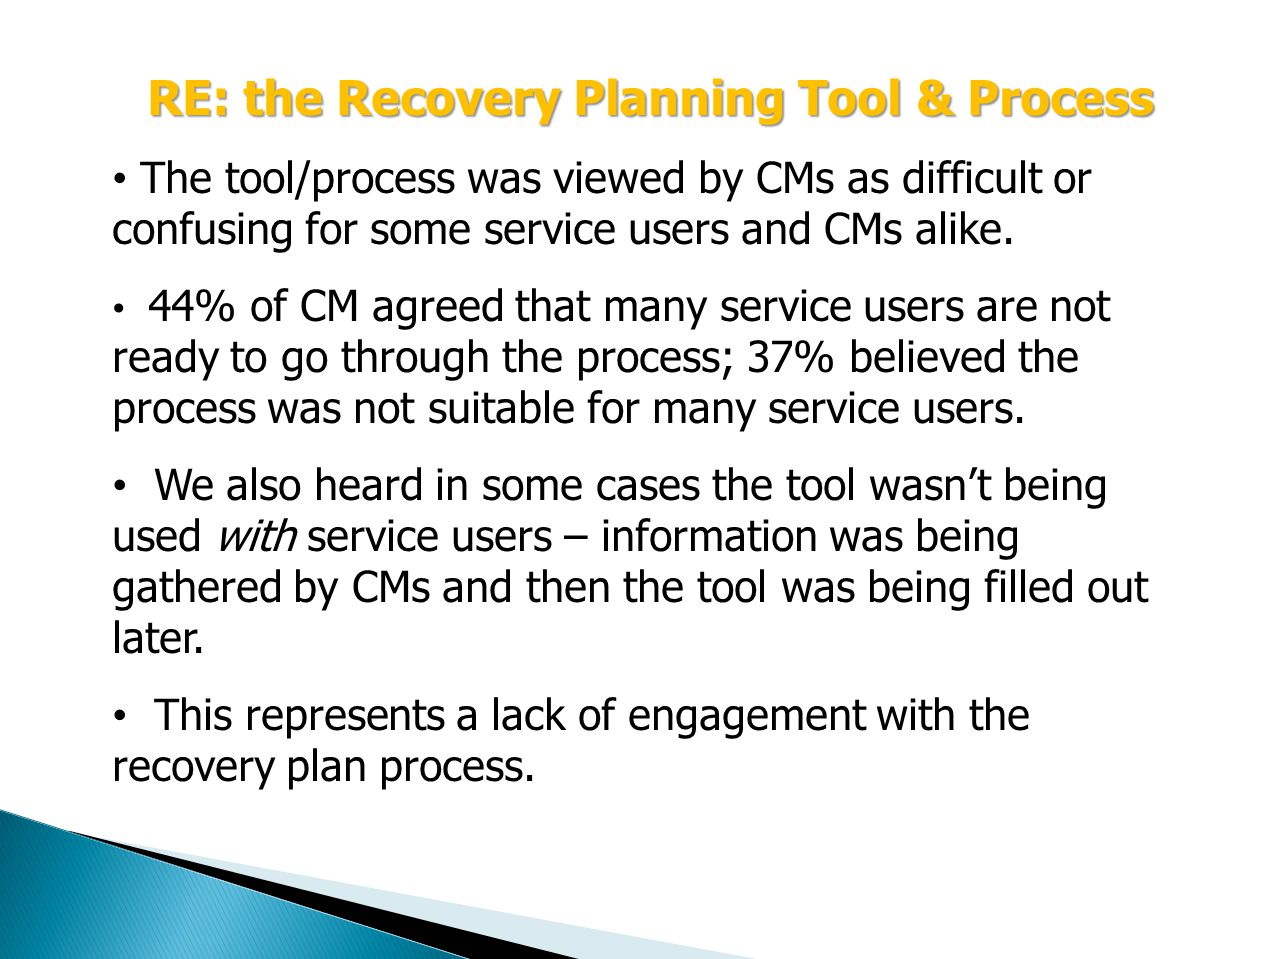 RE: the Recovery Planning Tool & Process The tool/process was viewed by CMs as difficult or confusing for some service users and CMs alike.